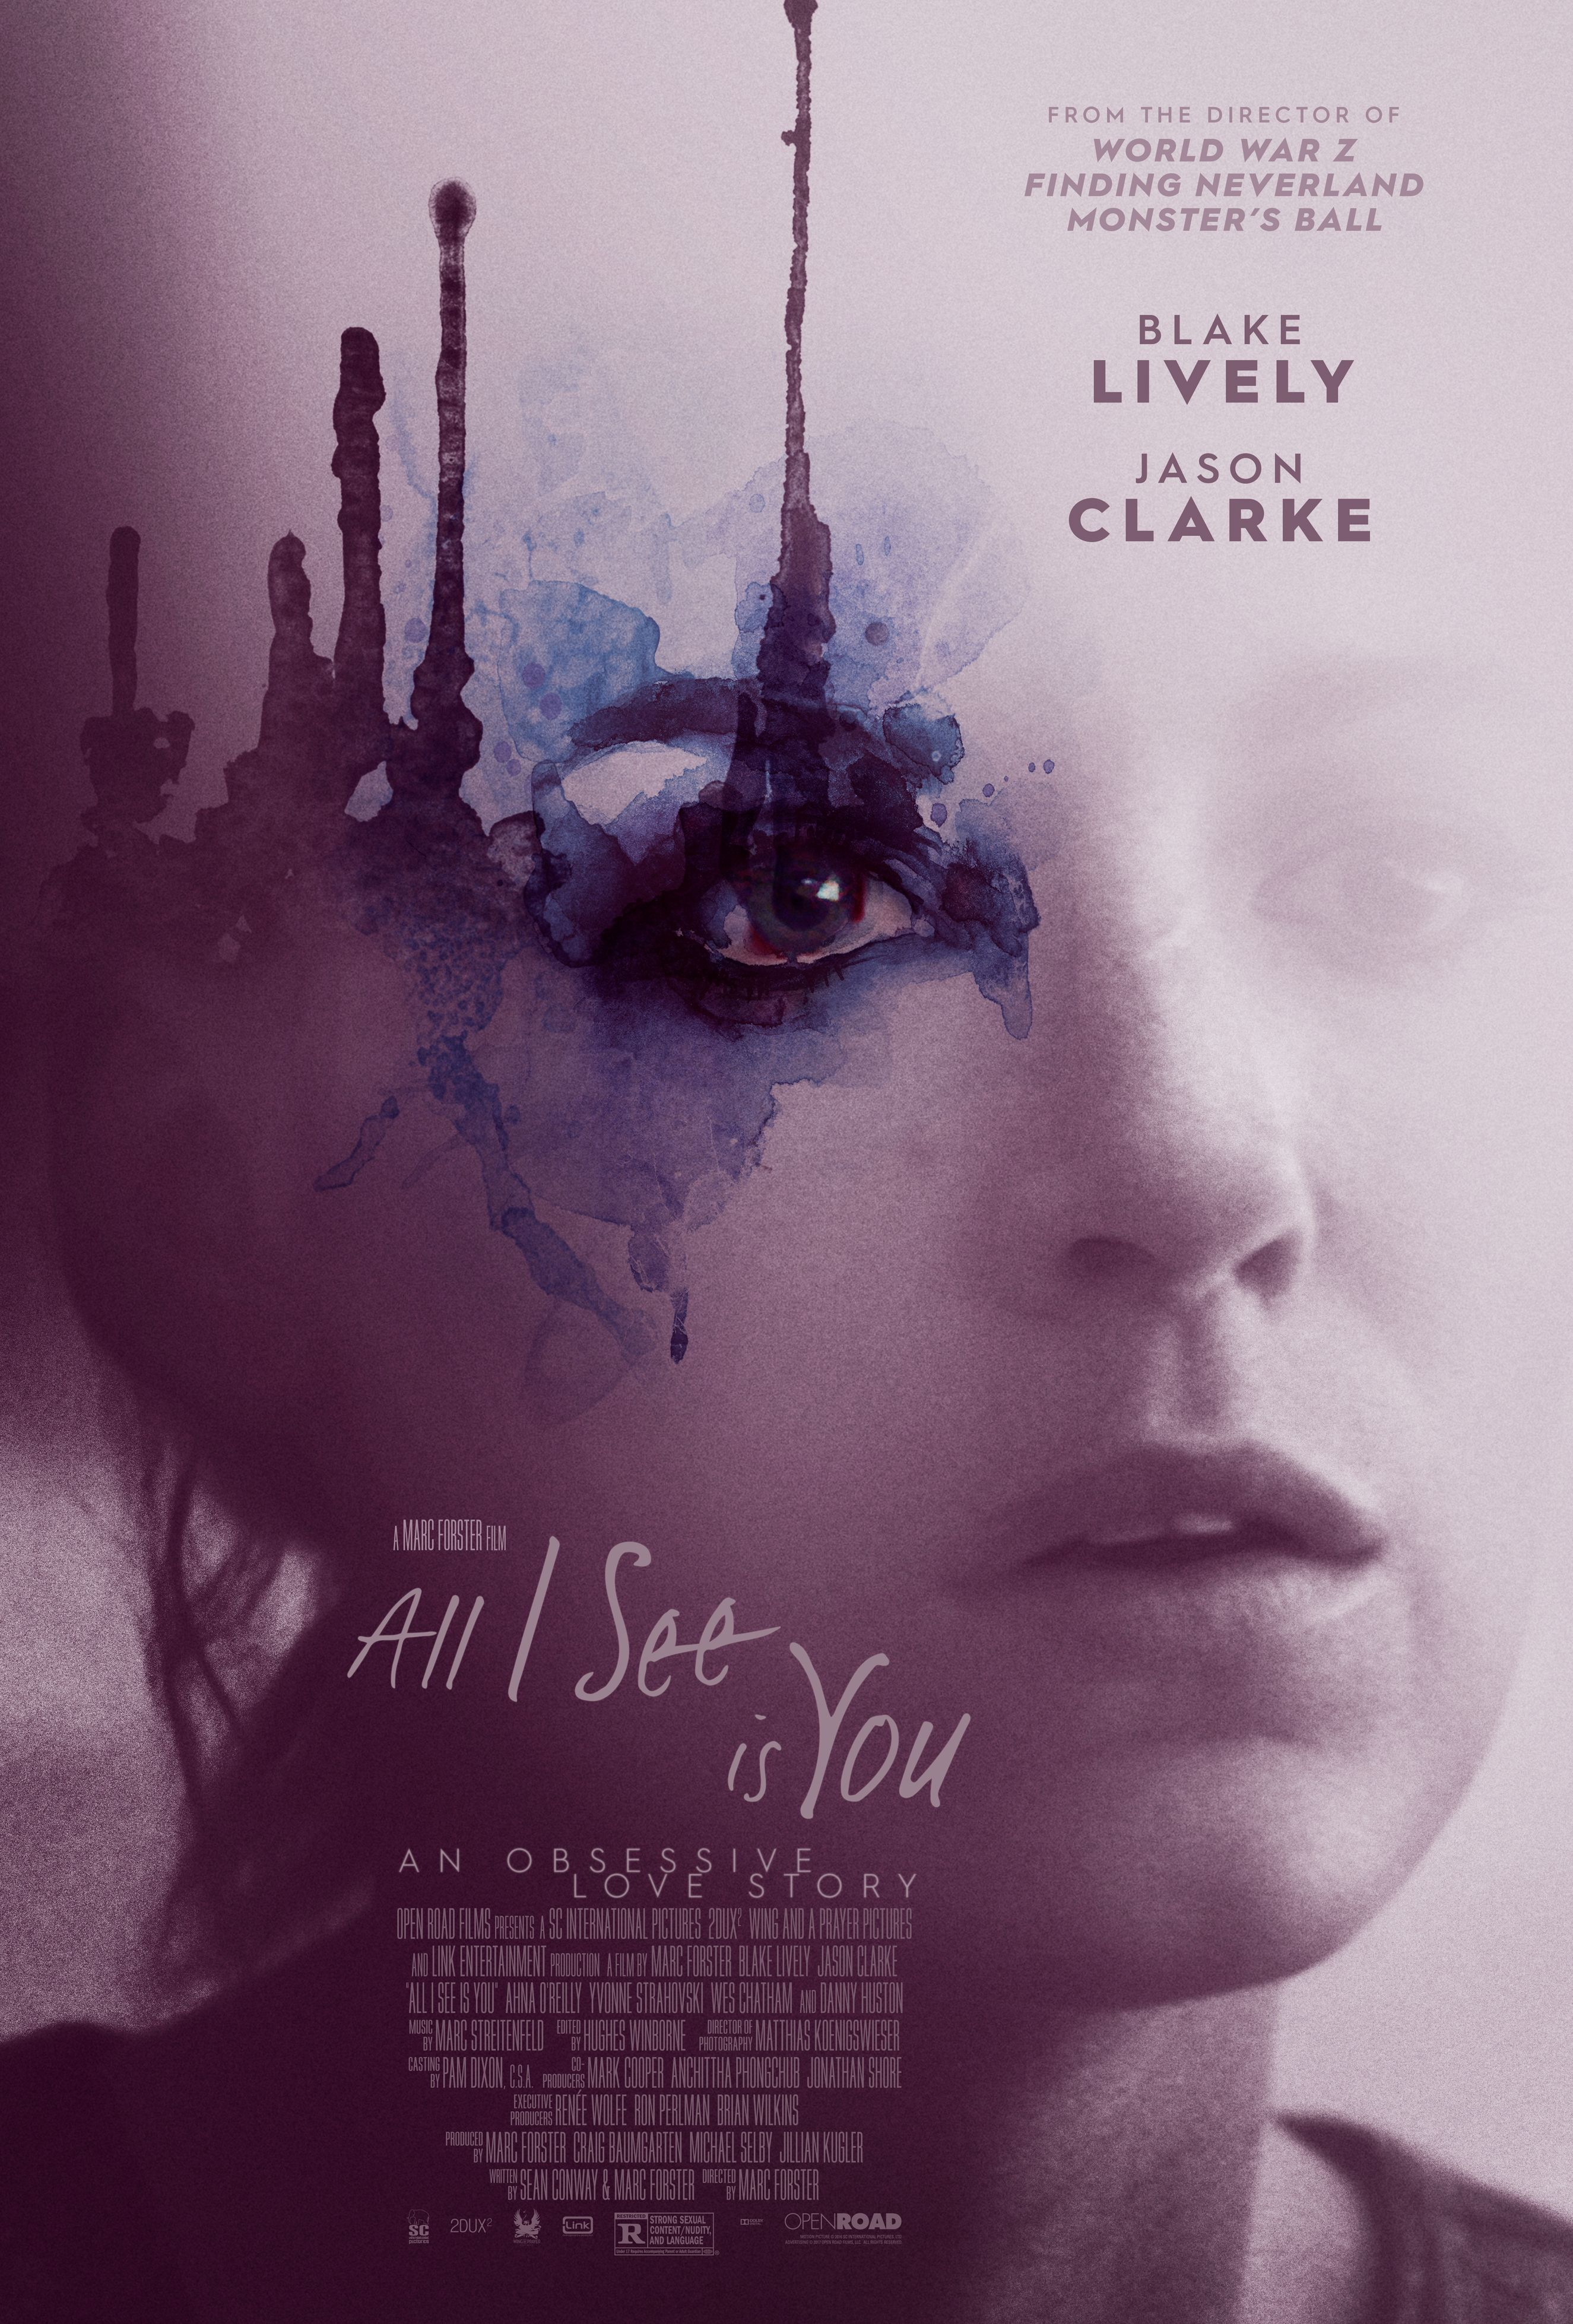 ALL I SEE IS YOU starring Blake Lively   In theaters October 27, 2017